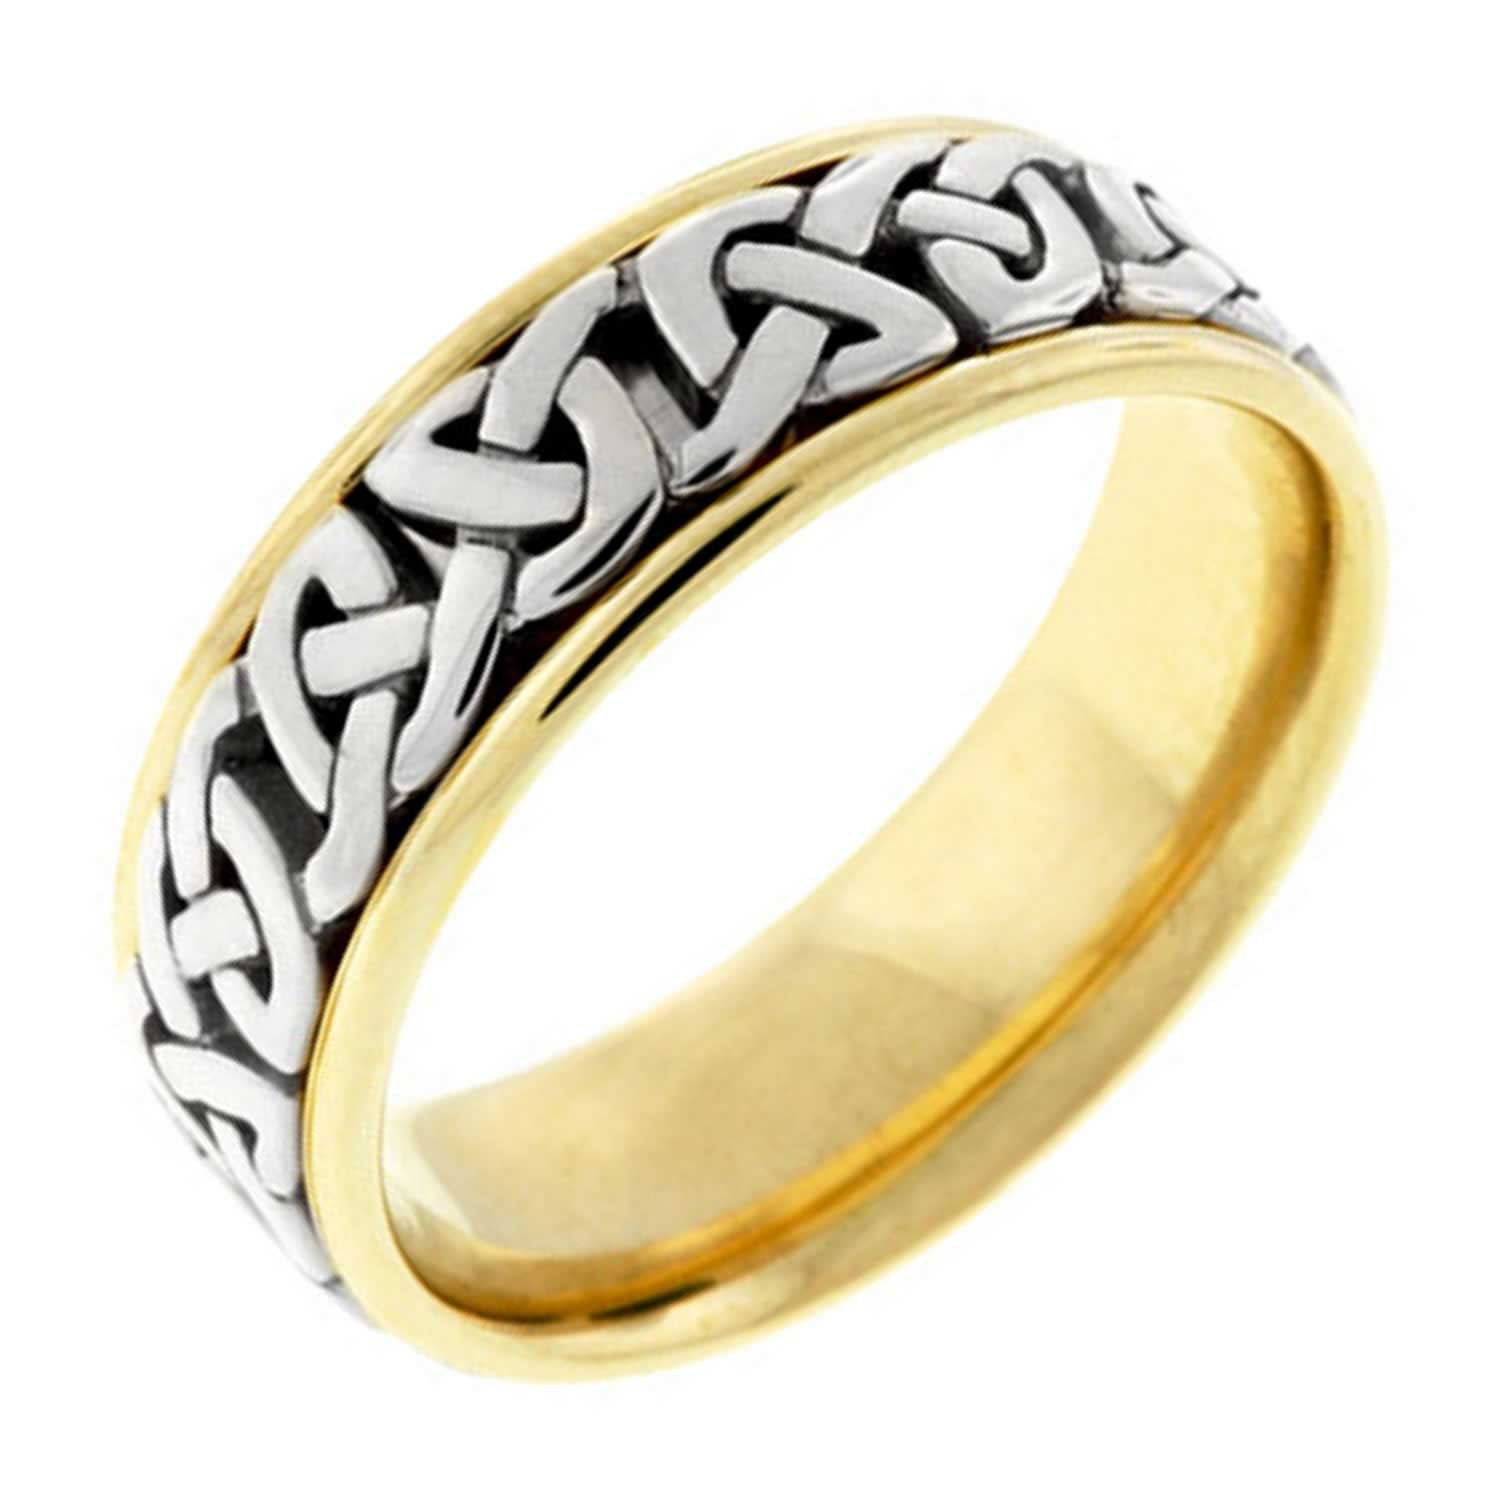 14K Two Tone Gold Celtic Love Knot Men's Comfort Fit Wedding Band (7mm) Size-13.5c1